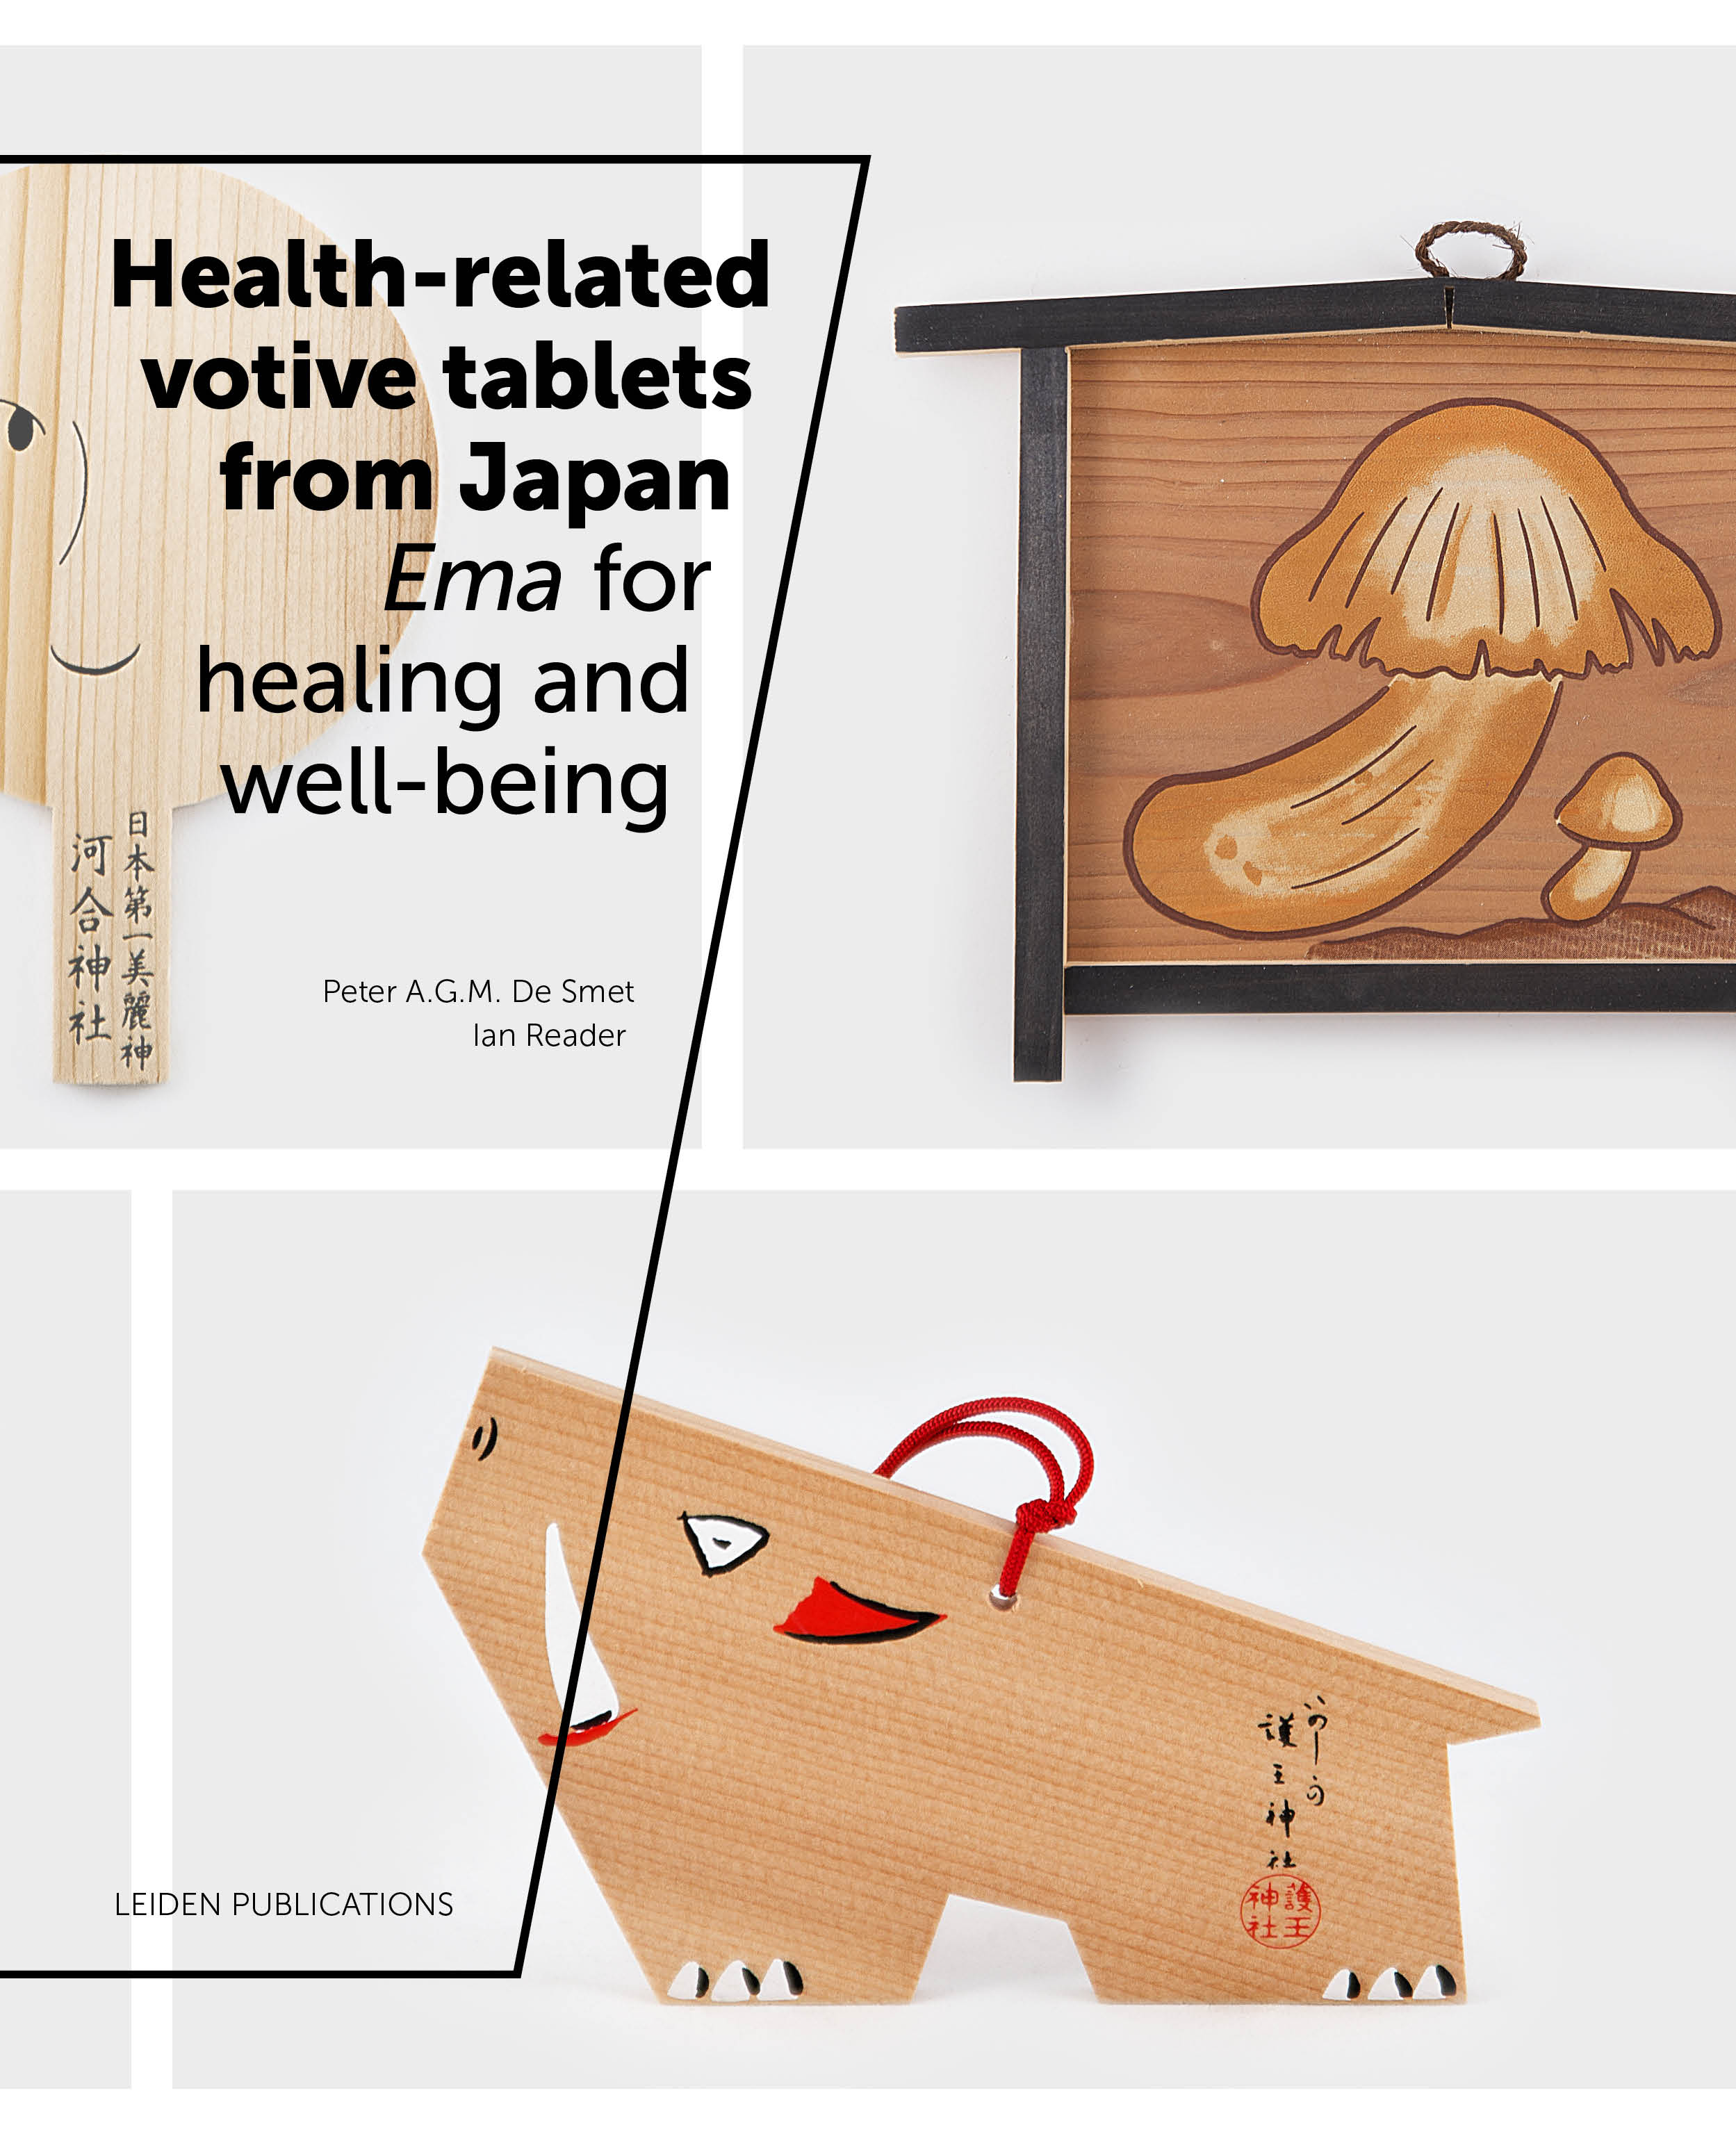 Healt-related Votive Tablets from Japan